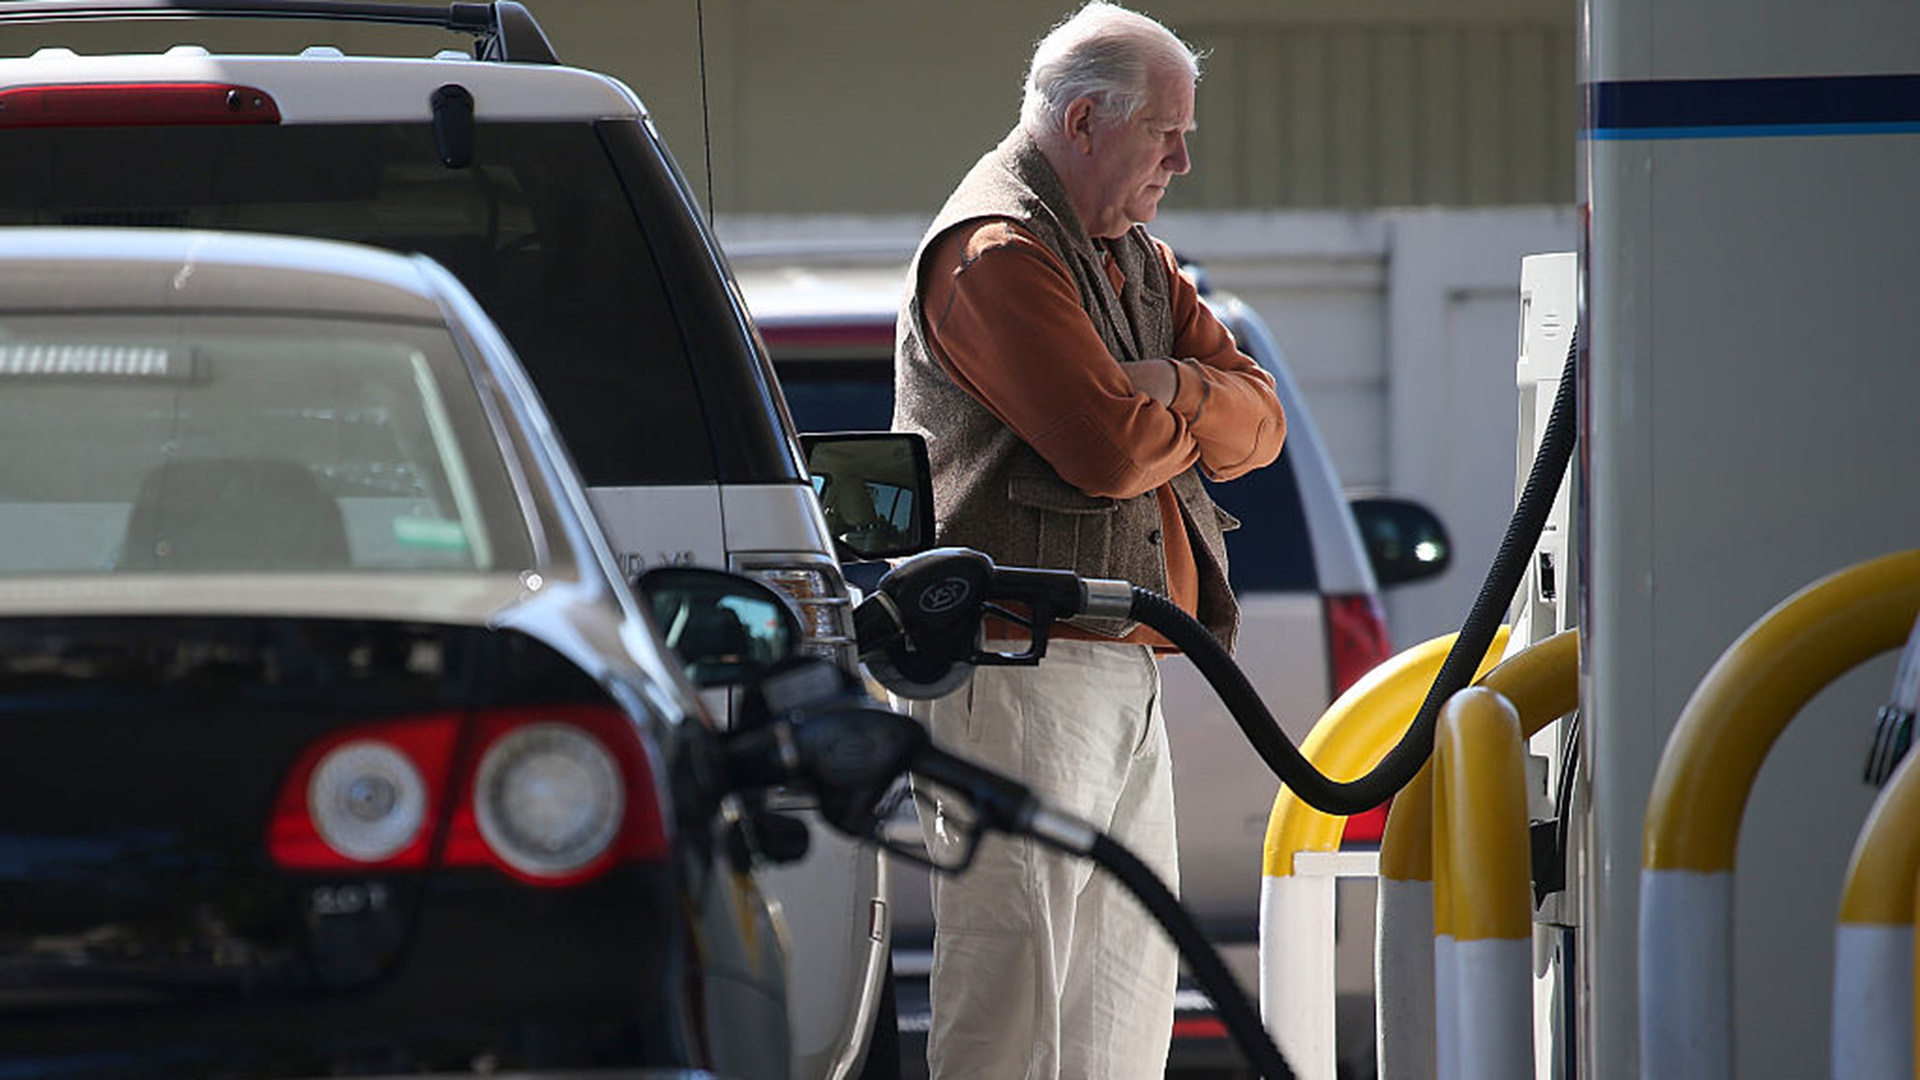 A customer pumps gasoline into his car at an Arco gas station in Mill Valley.